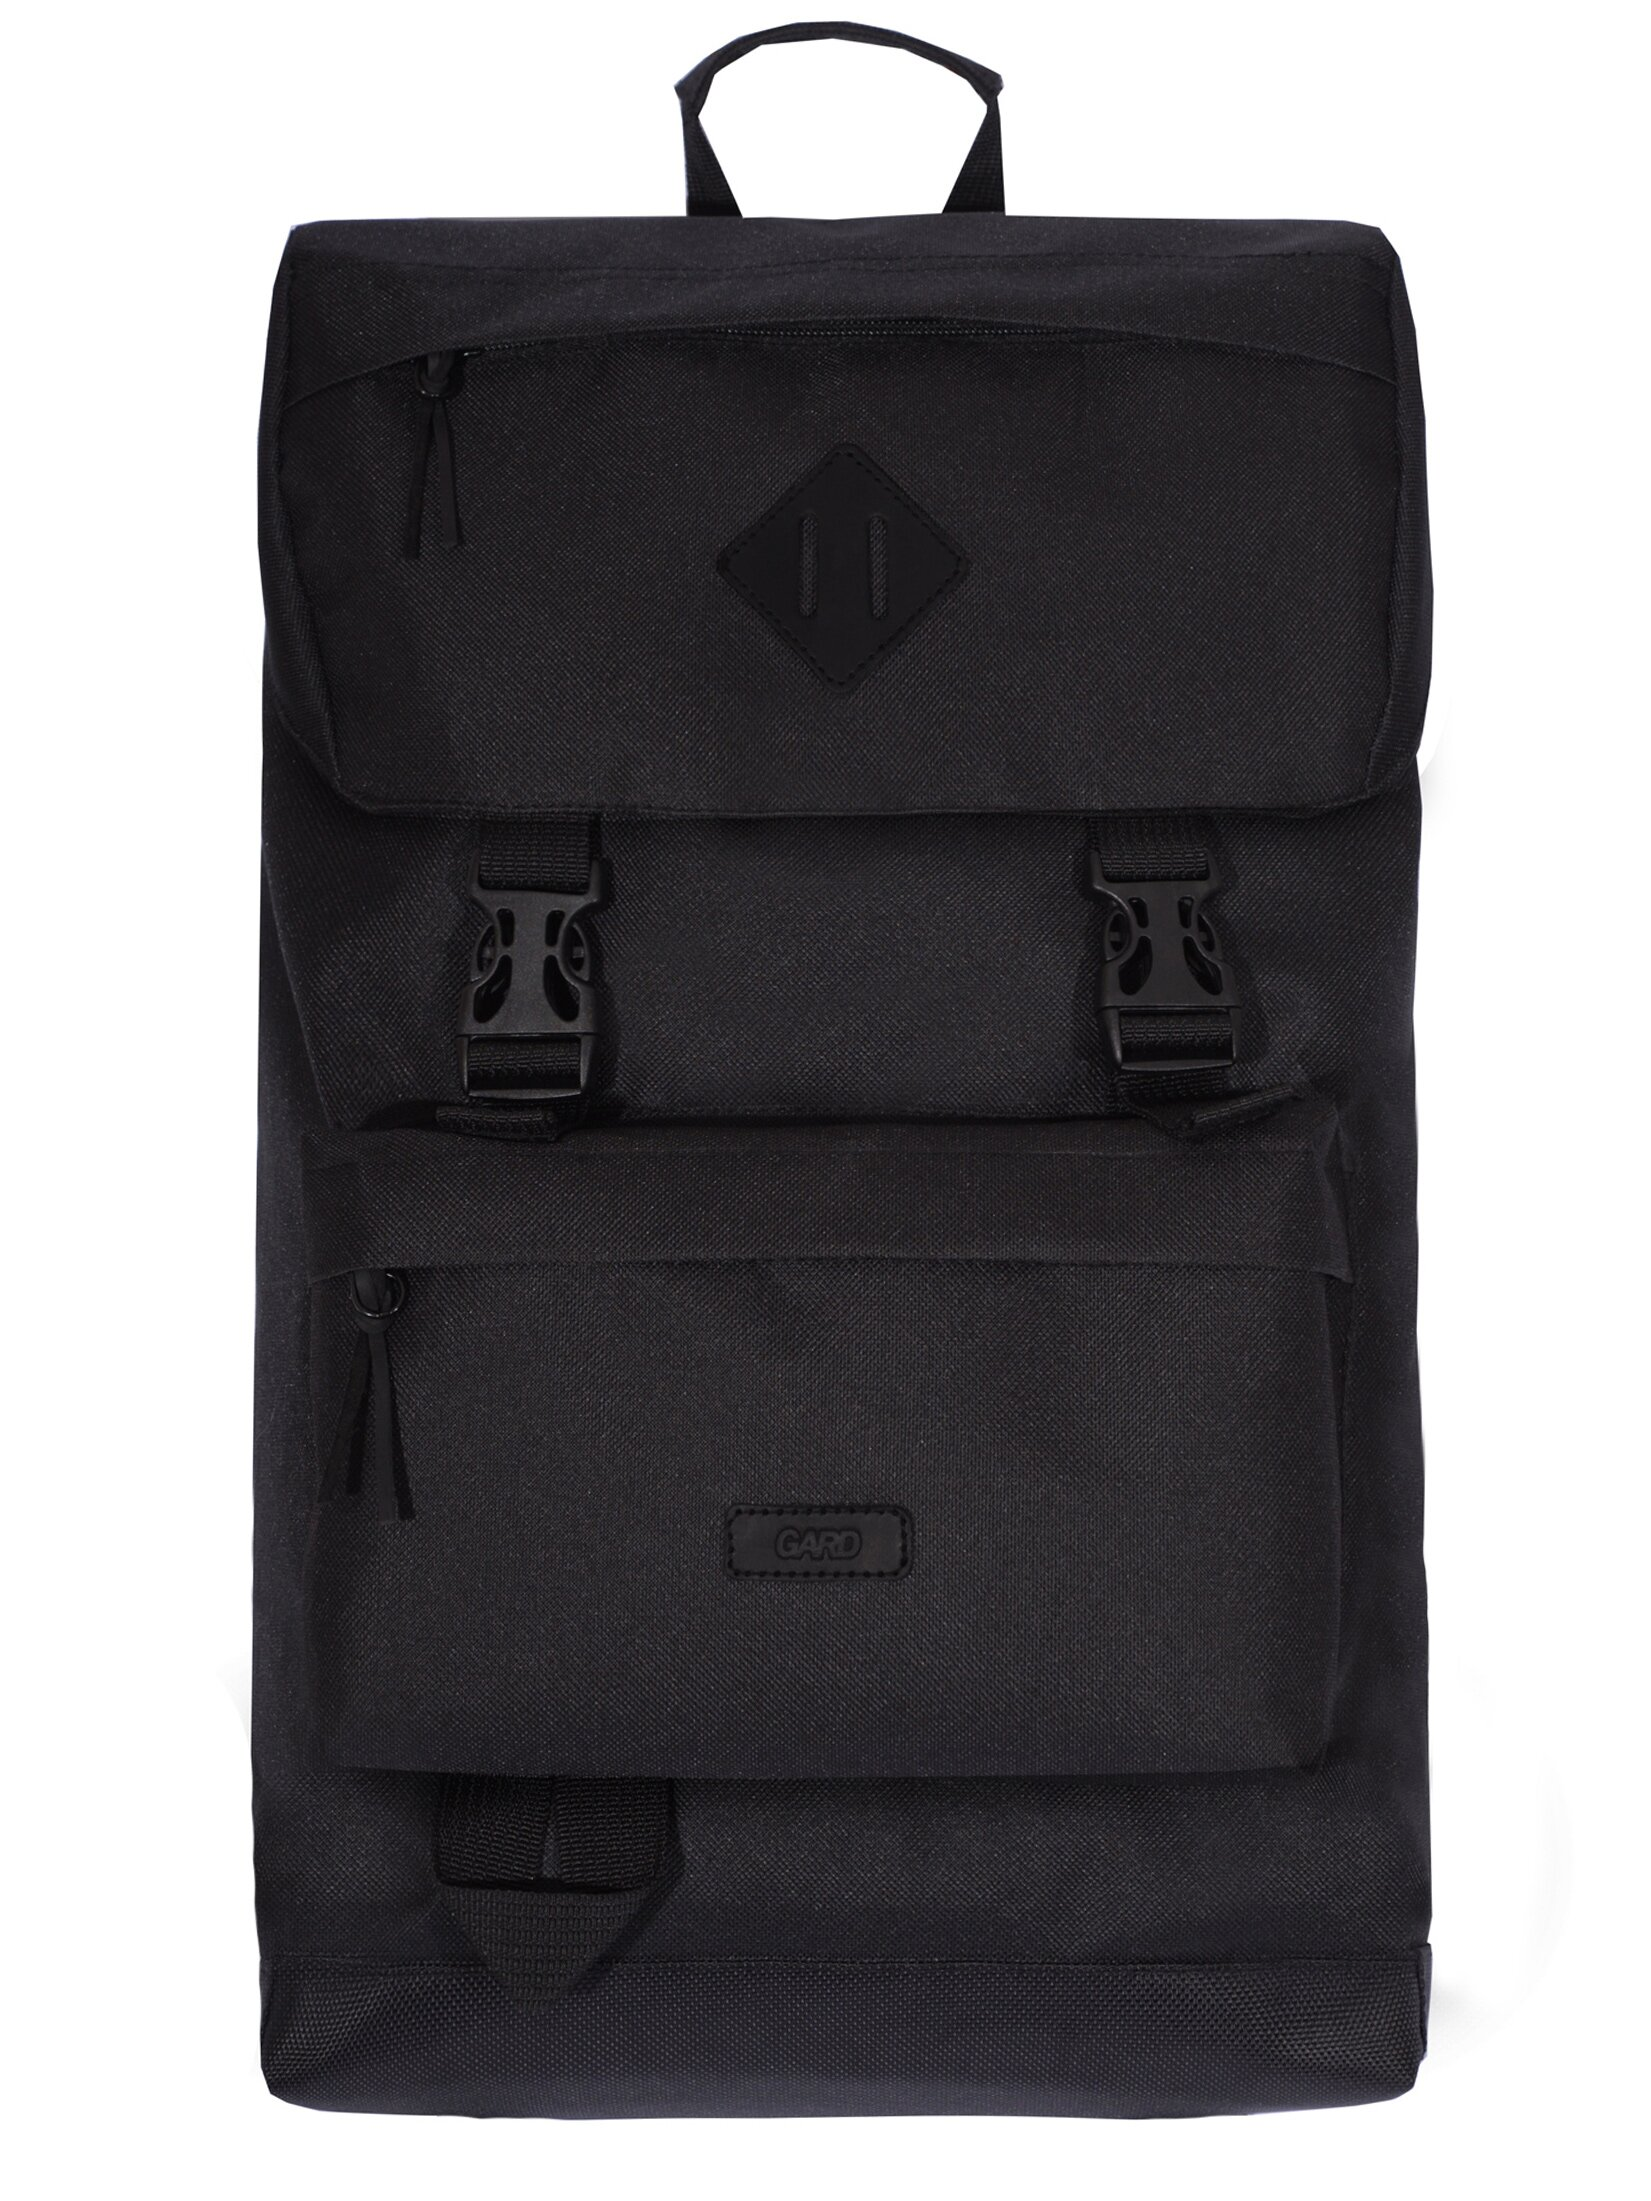 Рюкзак GARD СAMPING BACKPACK Черный (BPCM0001/GRD)